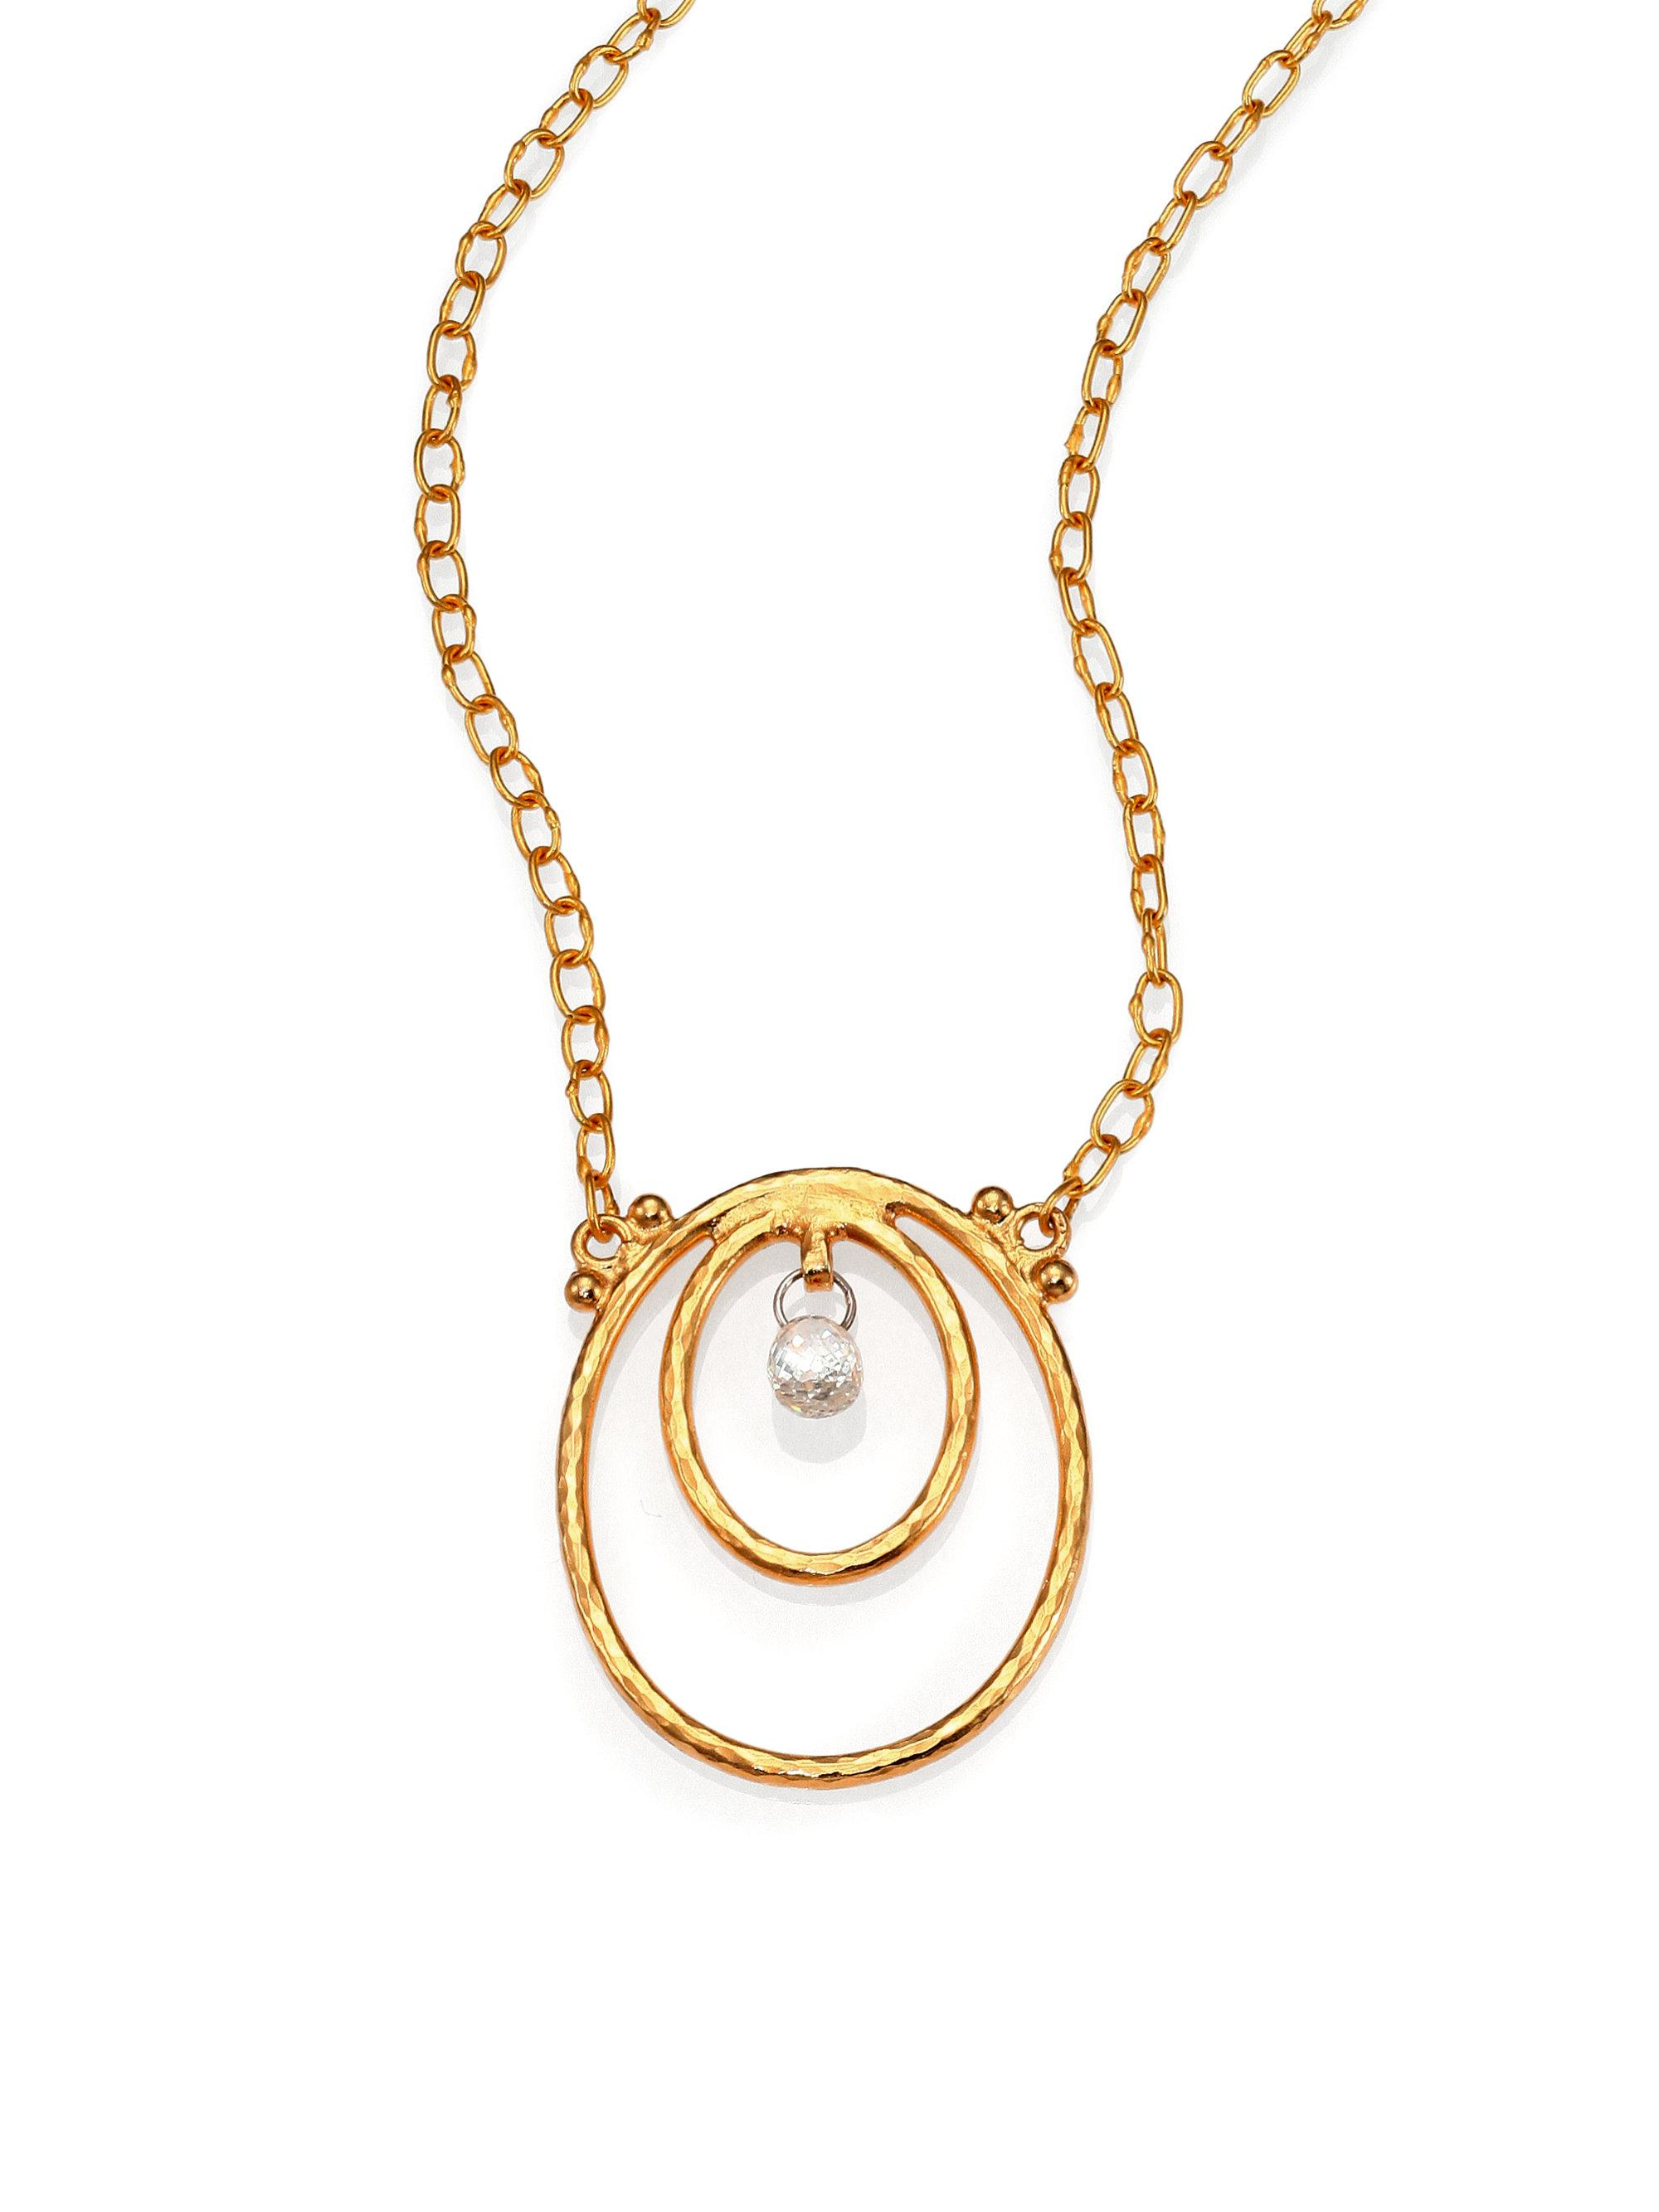 Gurhan Hoopla Graduating Two-Tone Chain Necklace lppES